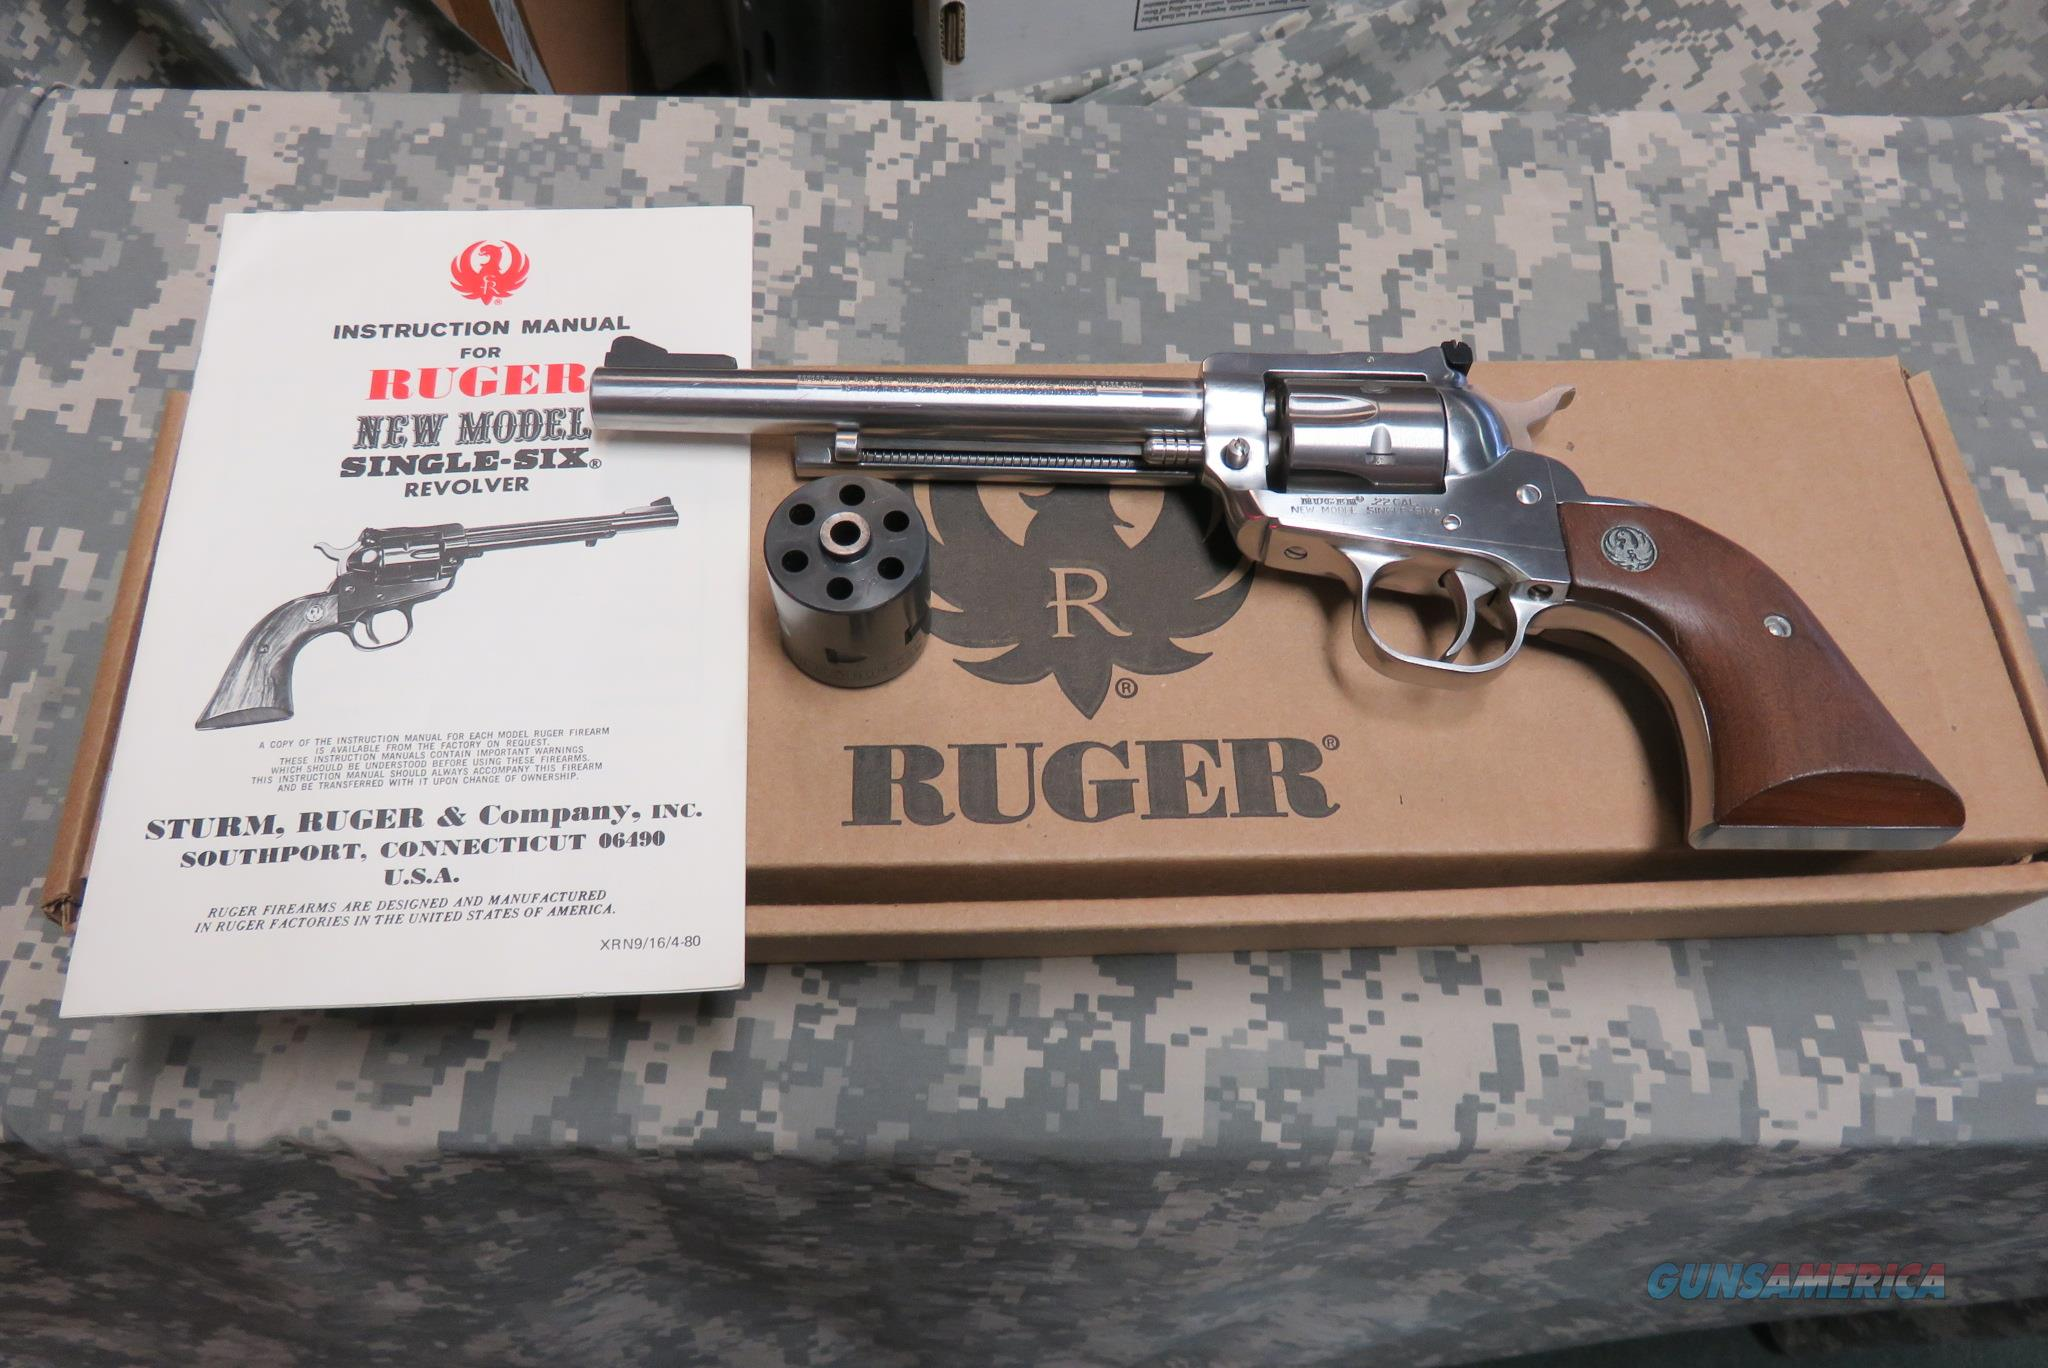 "RUGER N.M. SINGLE SIX 22LR, 6 1/2"" STAINLESS WITH BLUED MAGNUM CYLINDER  Guns > Pistols > Ruger Single Action Revolvers > Single Six Type"